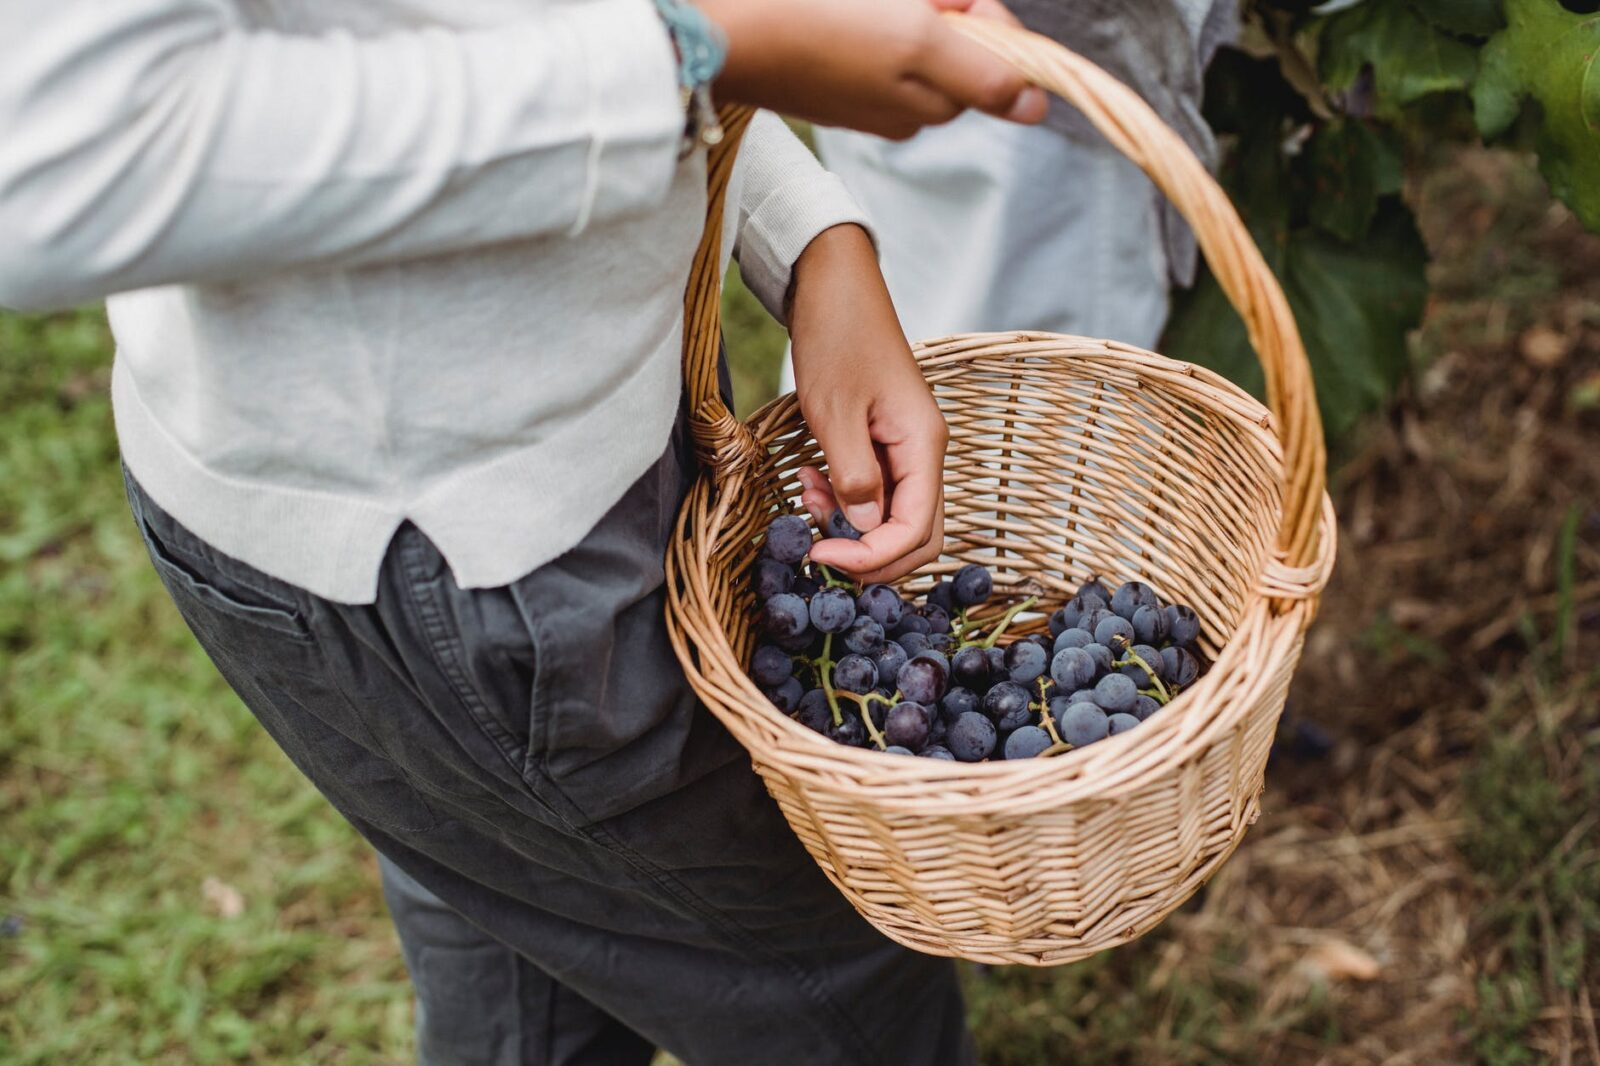 anonymous ethnic woman carrying basket with grapes